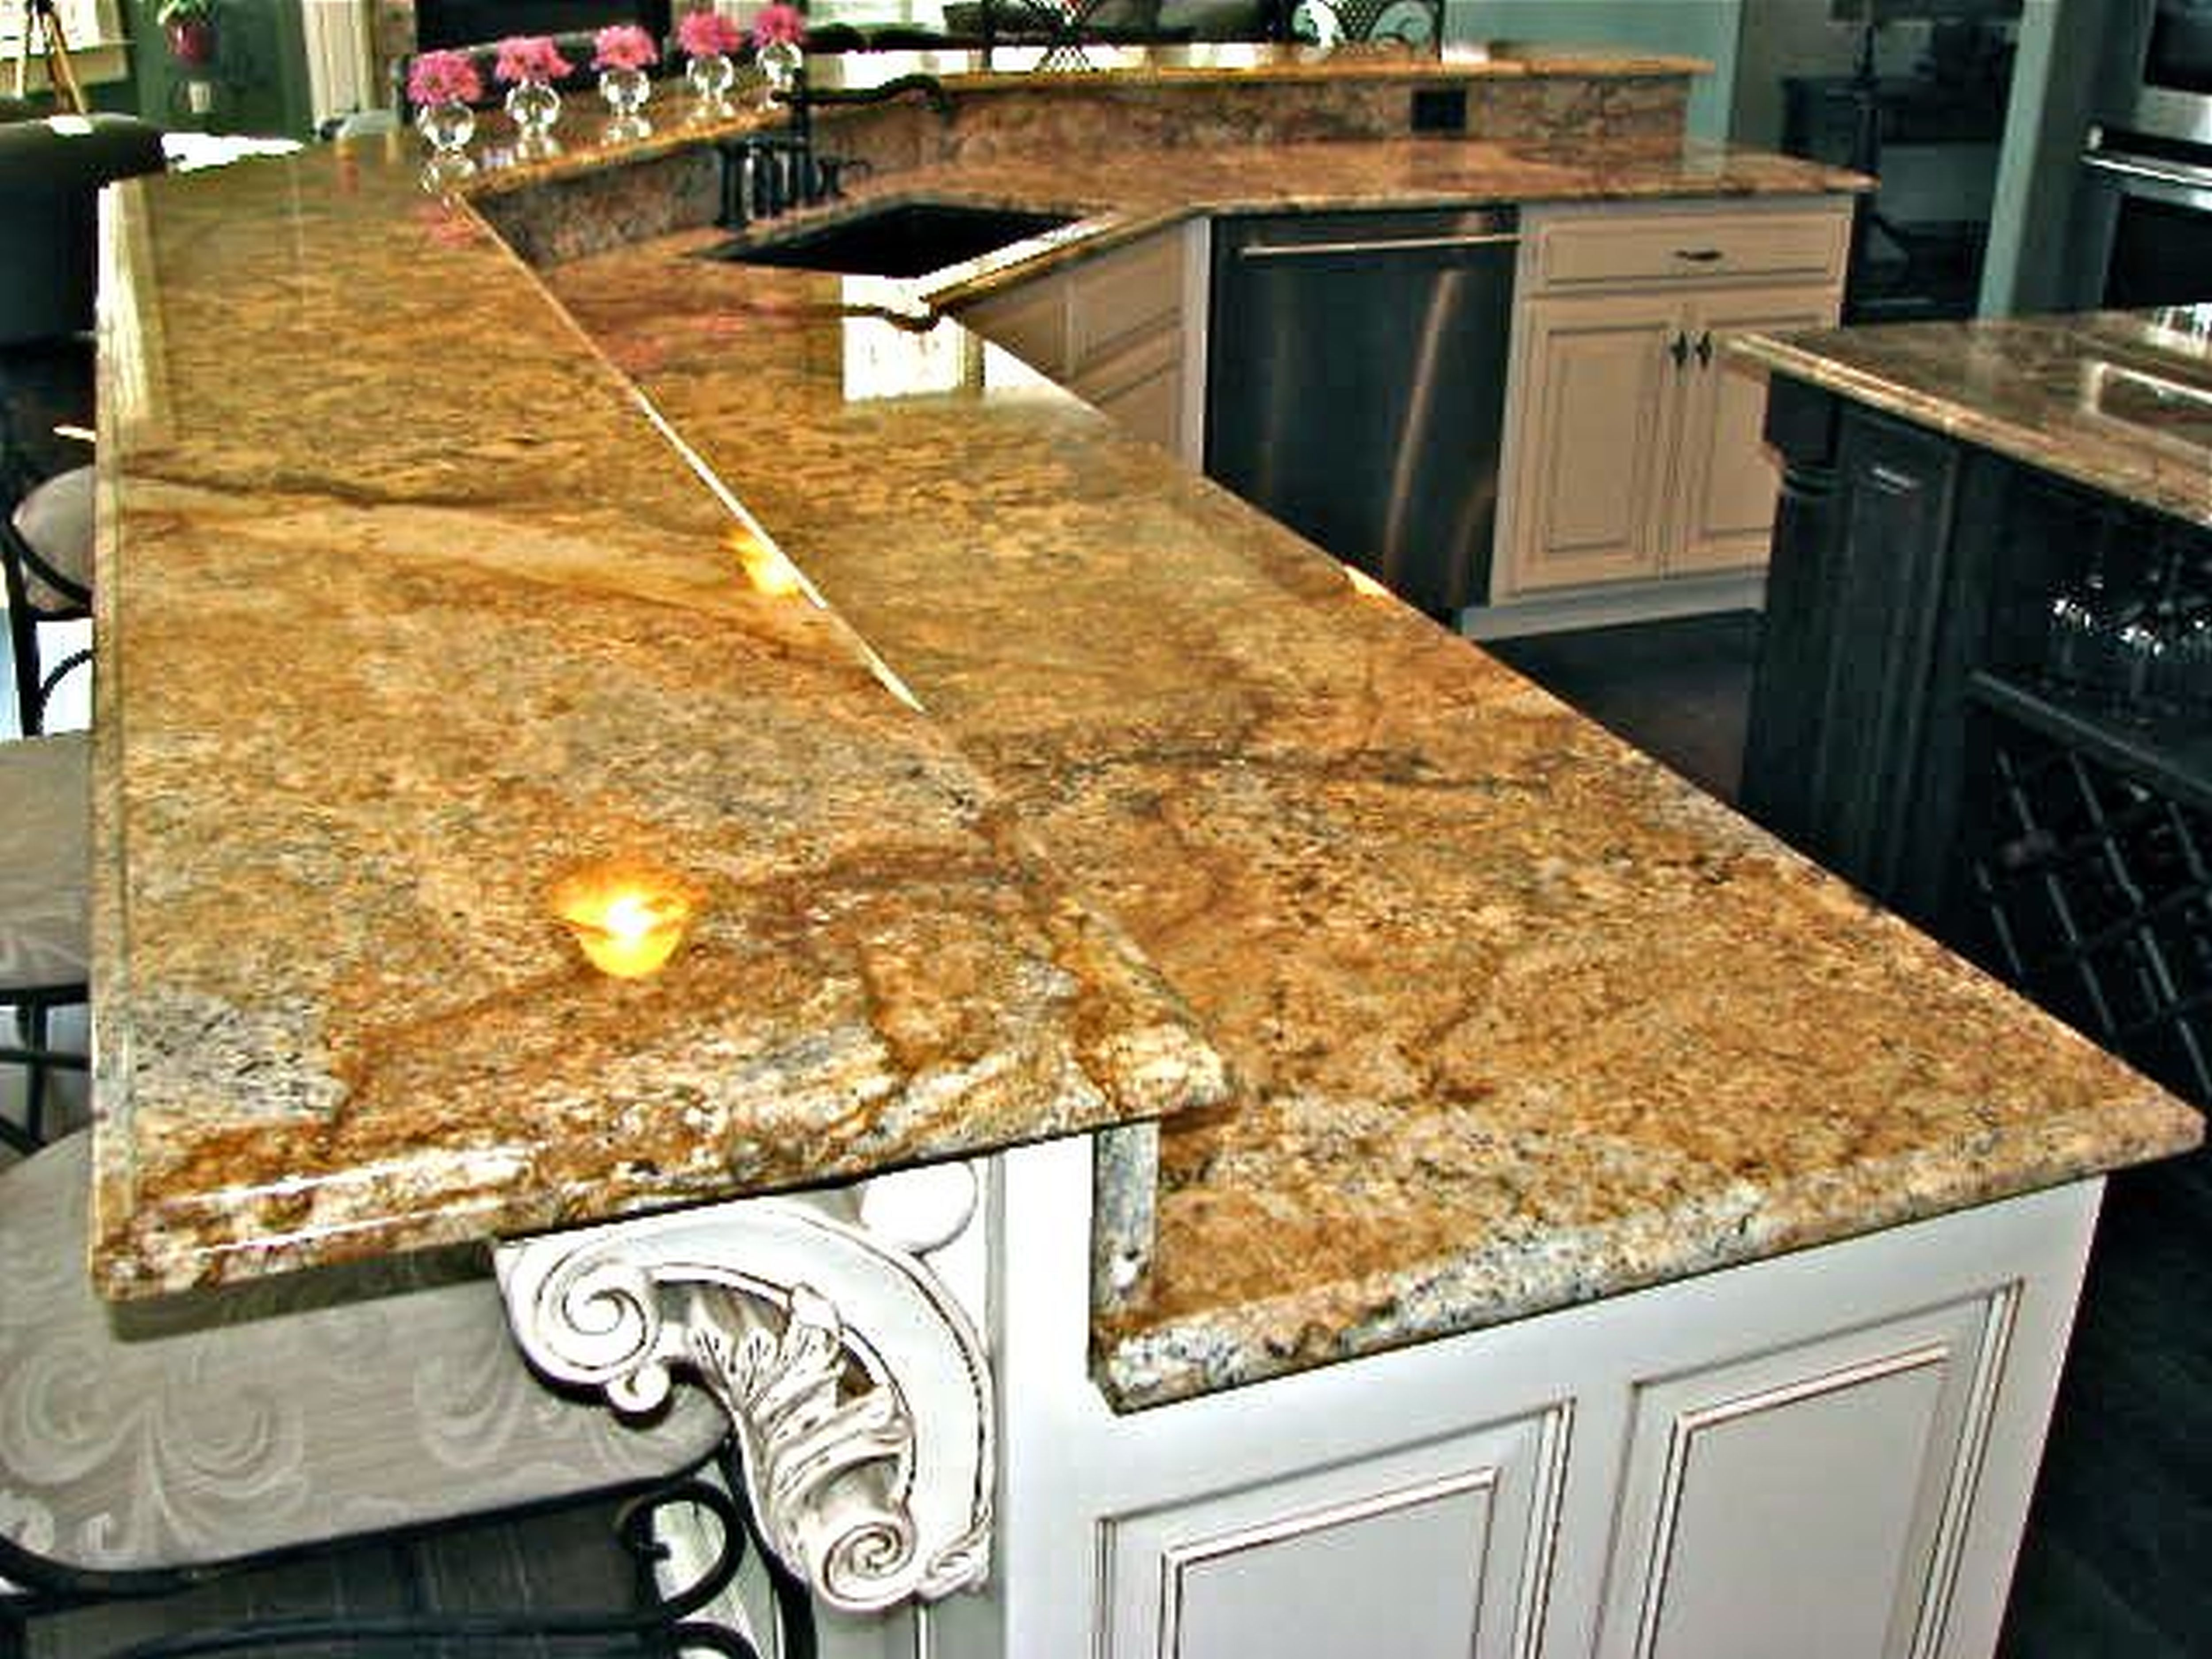 Home Depot Granite Prices Home Home Accessories Endearing